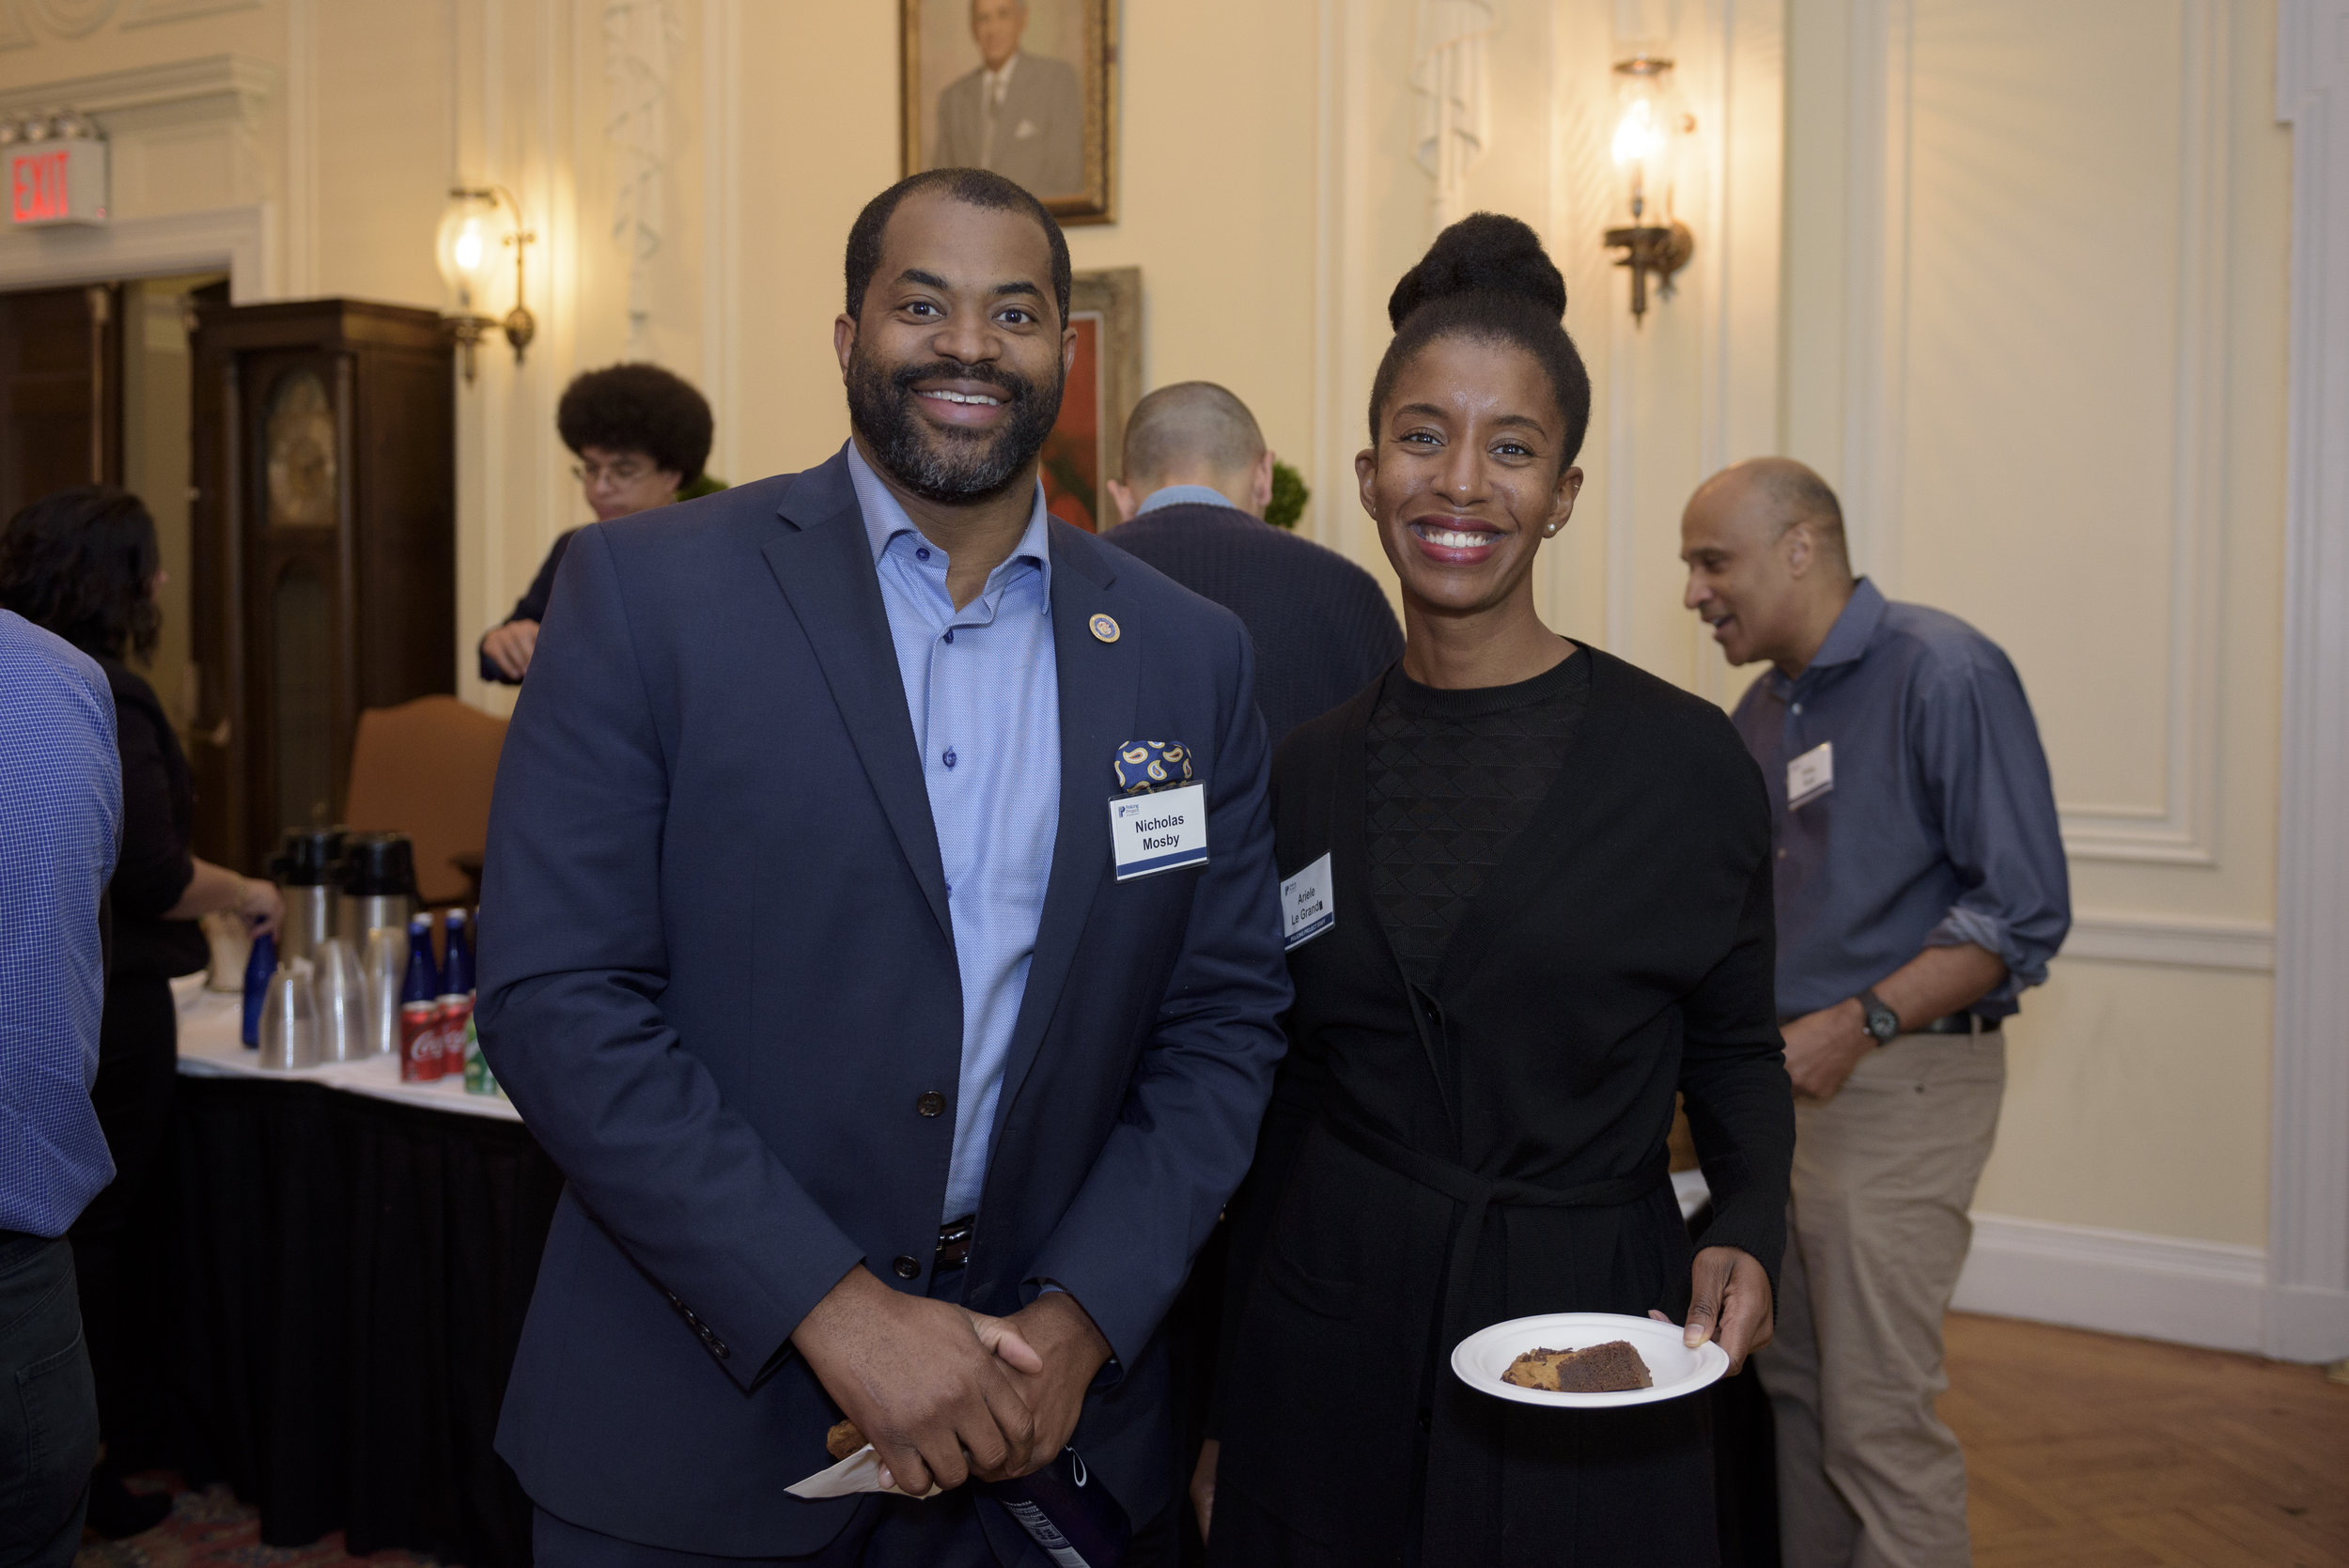 Nicholas Mosby, member of the Maryland House of Delegates, and Policing Project Senior Program Manager Ariele Le Grand